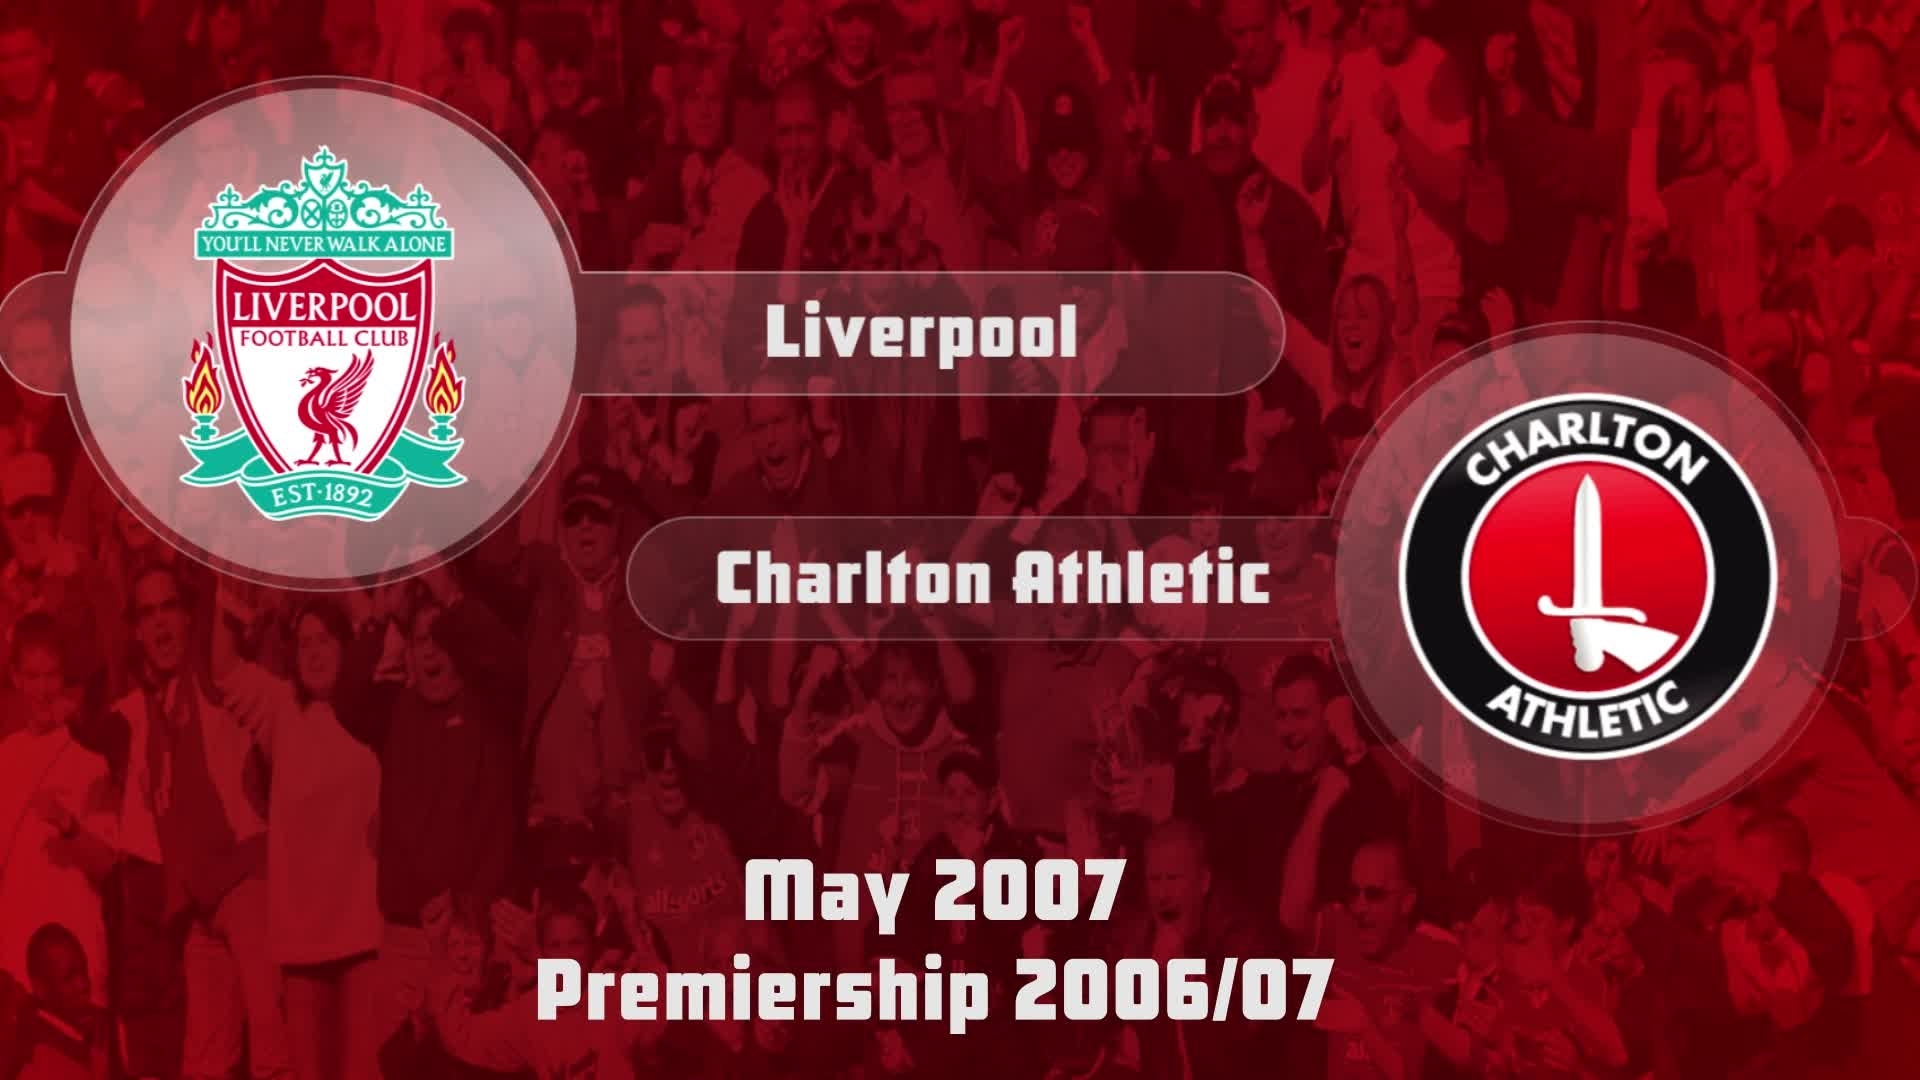 43 HIGHLIGHTS | Liverpool 2 Charlton 2 (May 2007)